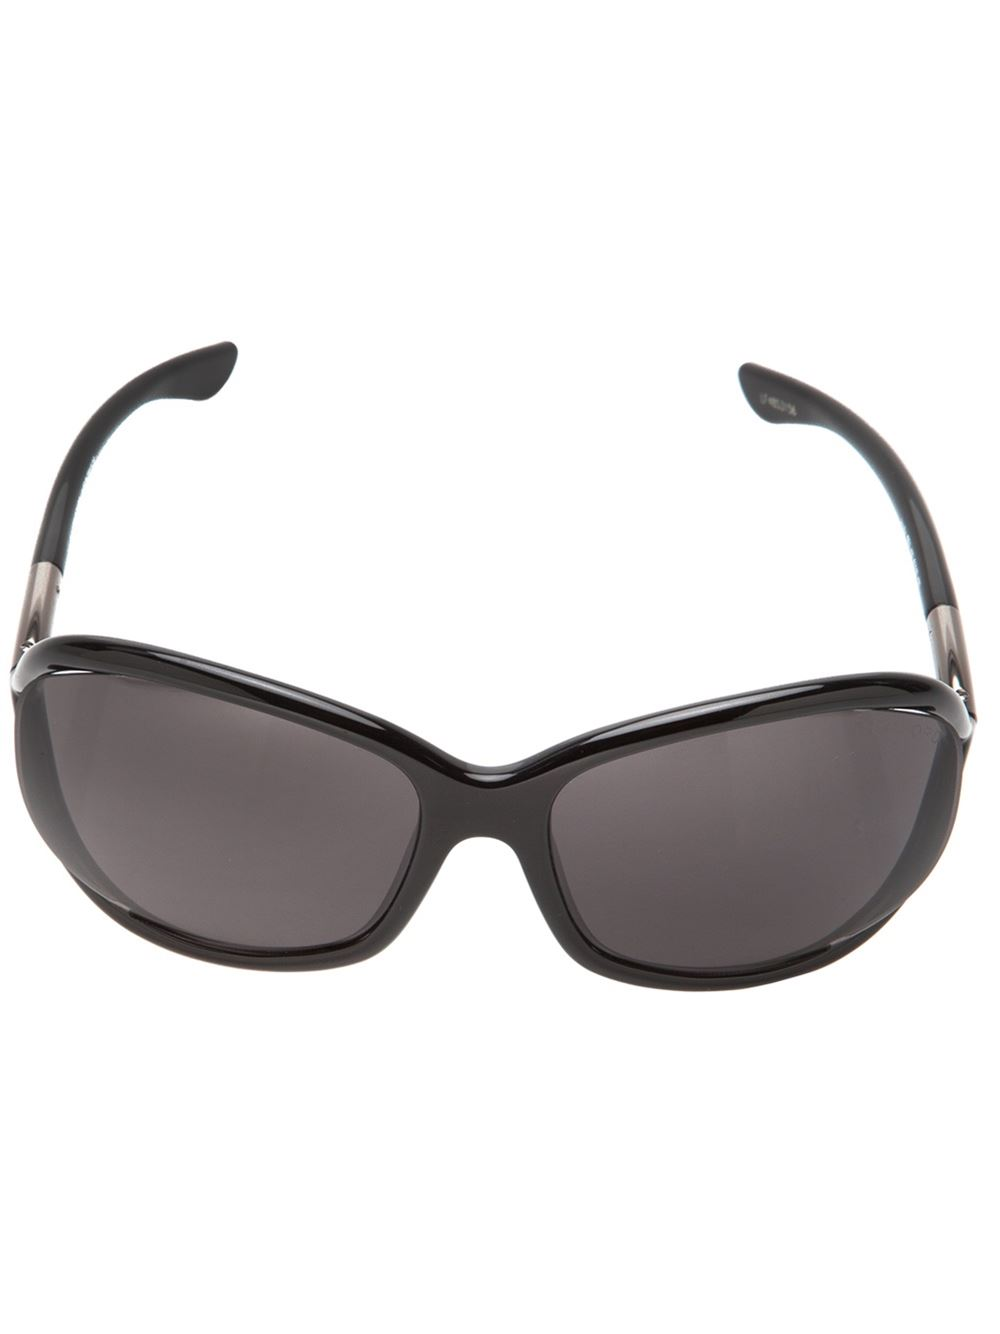 Tom Ford 'jennifer' Sunglasses - Marissa Collections - Farfetch.com